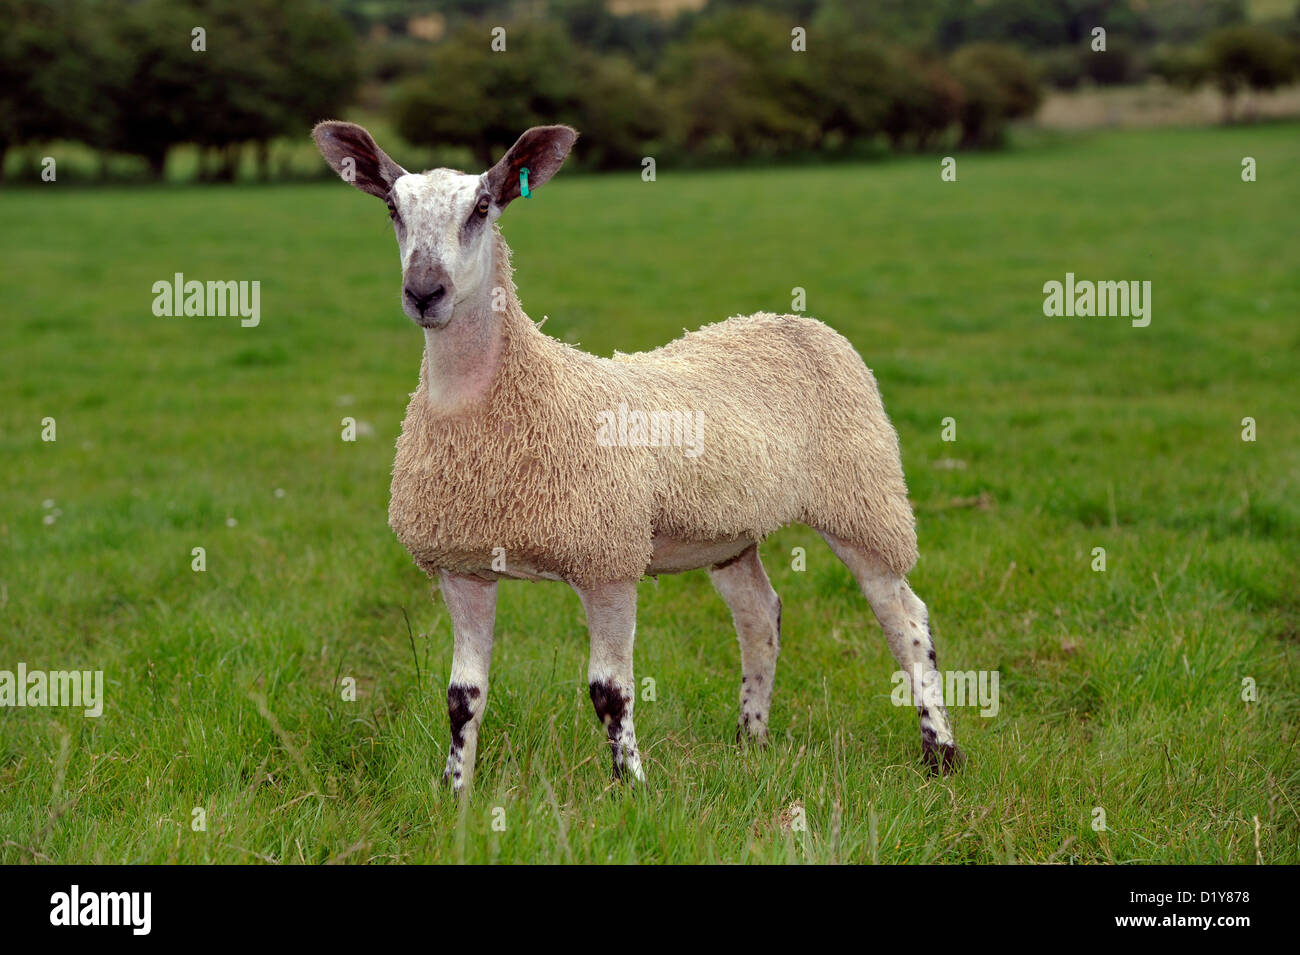 Blue Faced Leicester ewe lamb in field. Cumbria, UK - Stock Image